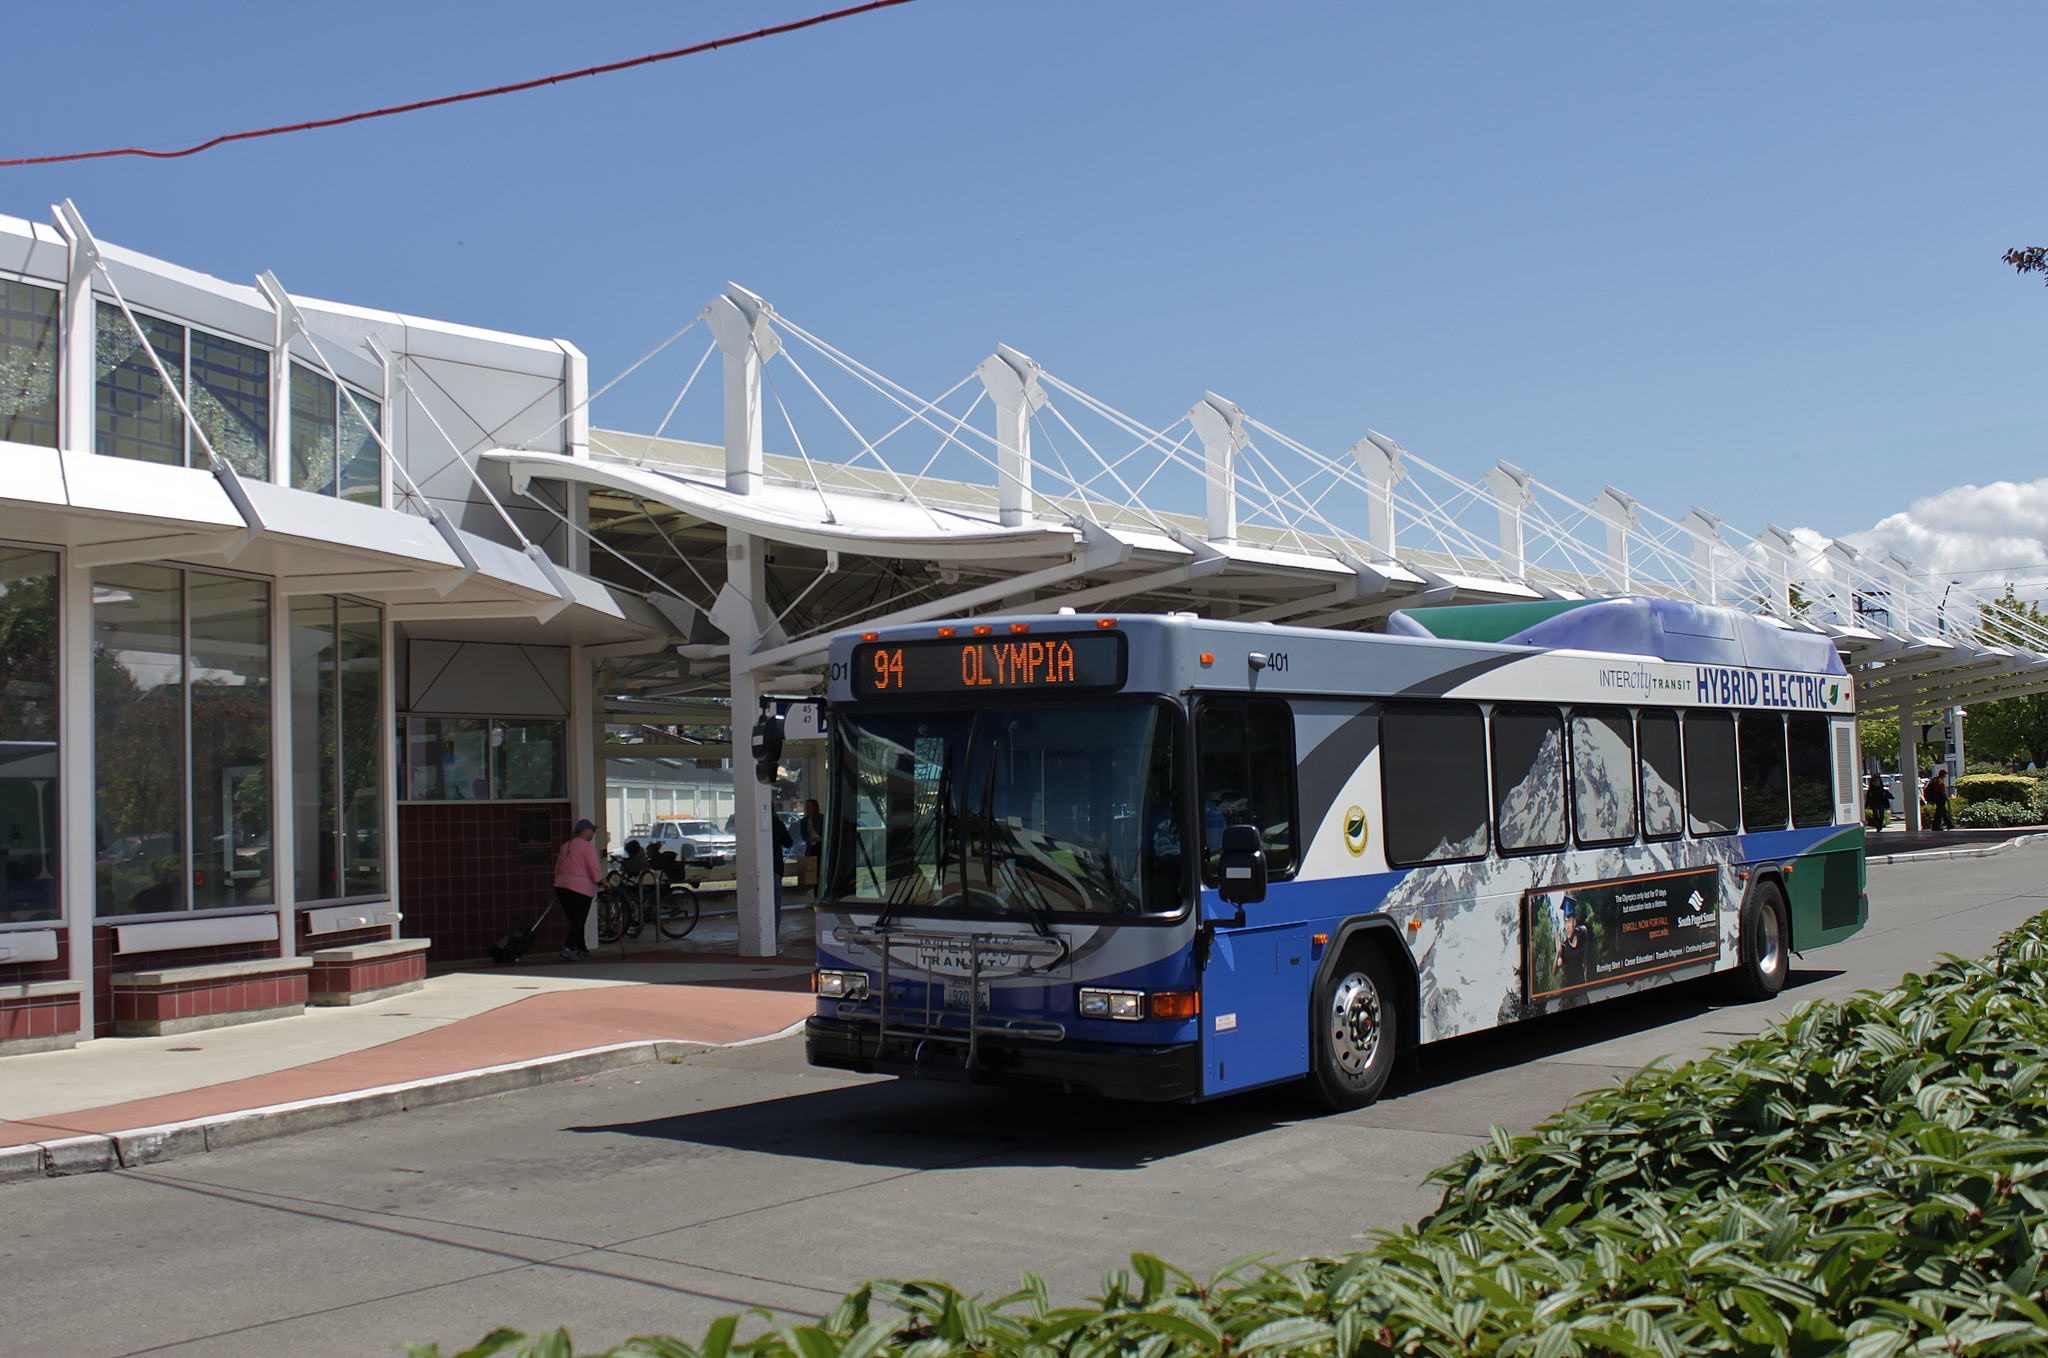 intercity transit pins its hopes and dreams on prop. 1